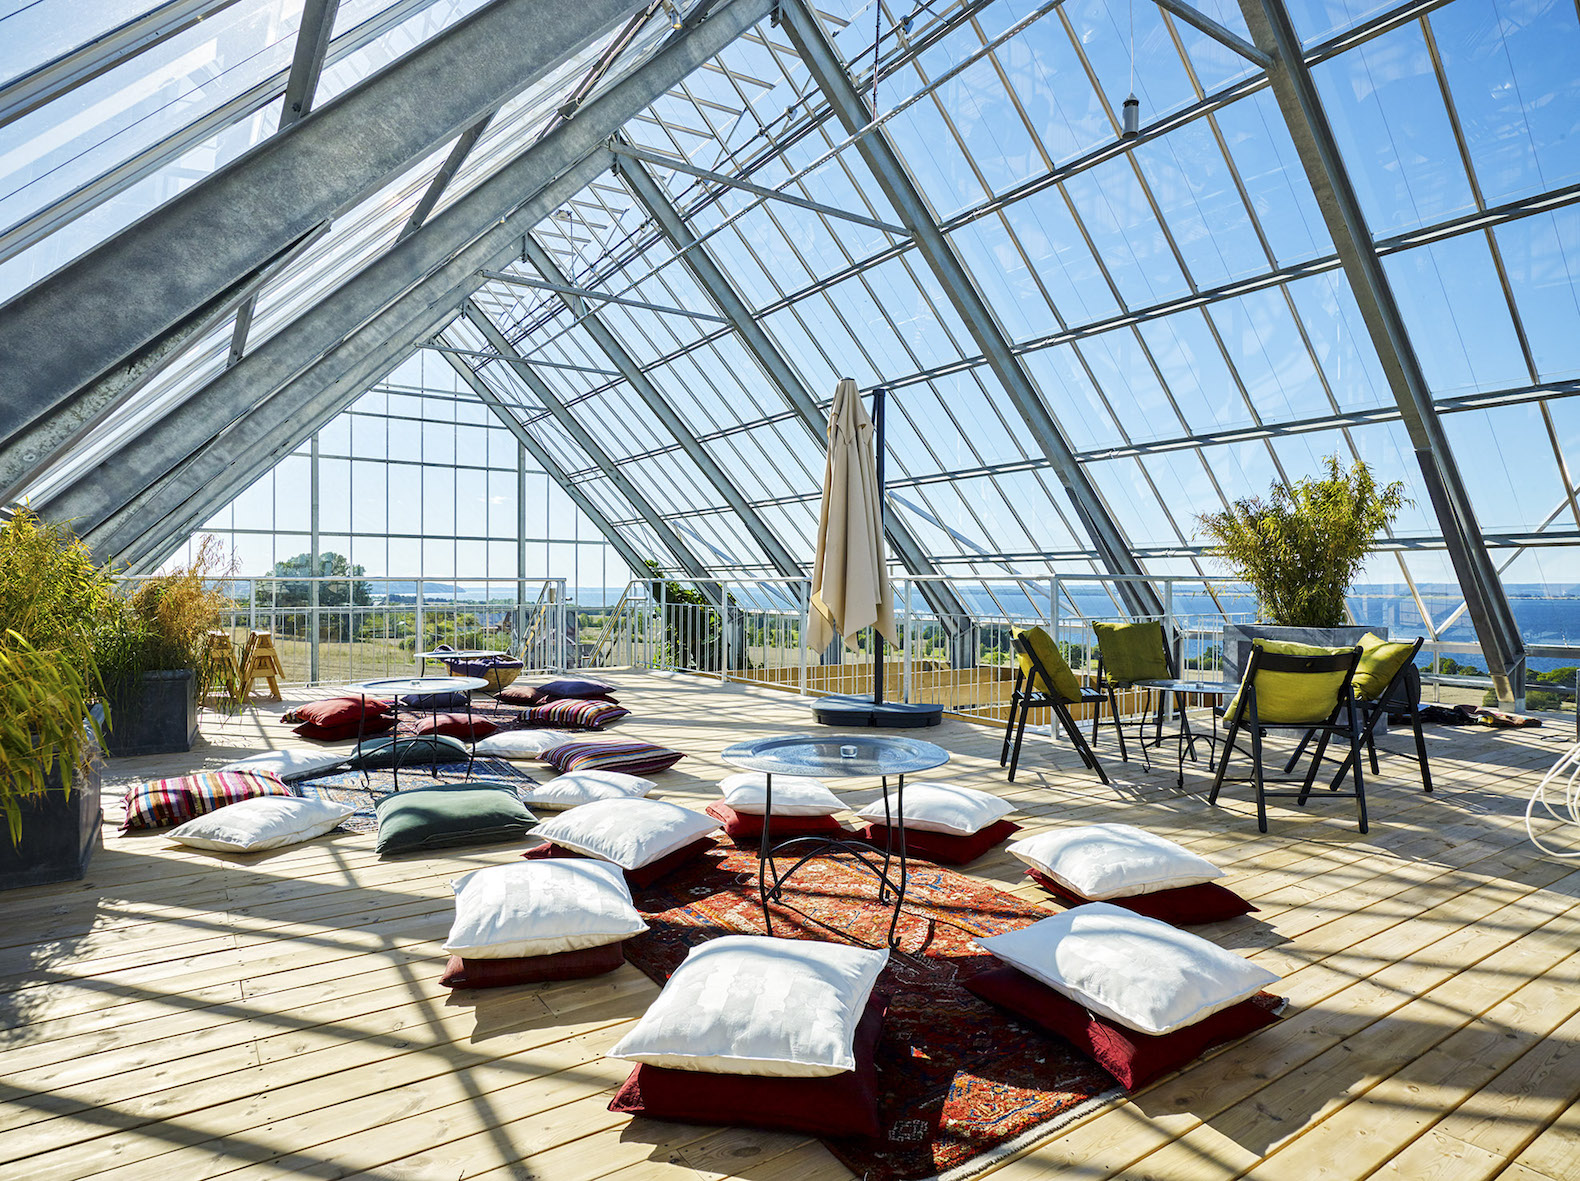 Exceptionnel Naturhus, Uppgrenna Nature House, Uppgrenna Naturehus, Greenhouse Living,  Greenhouse, Frederik Olson